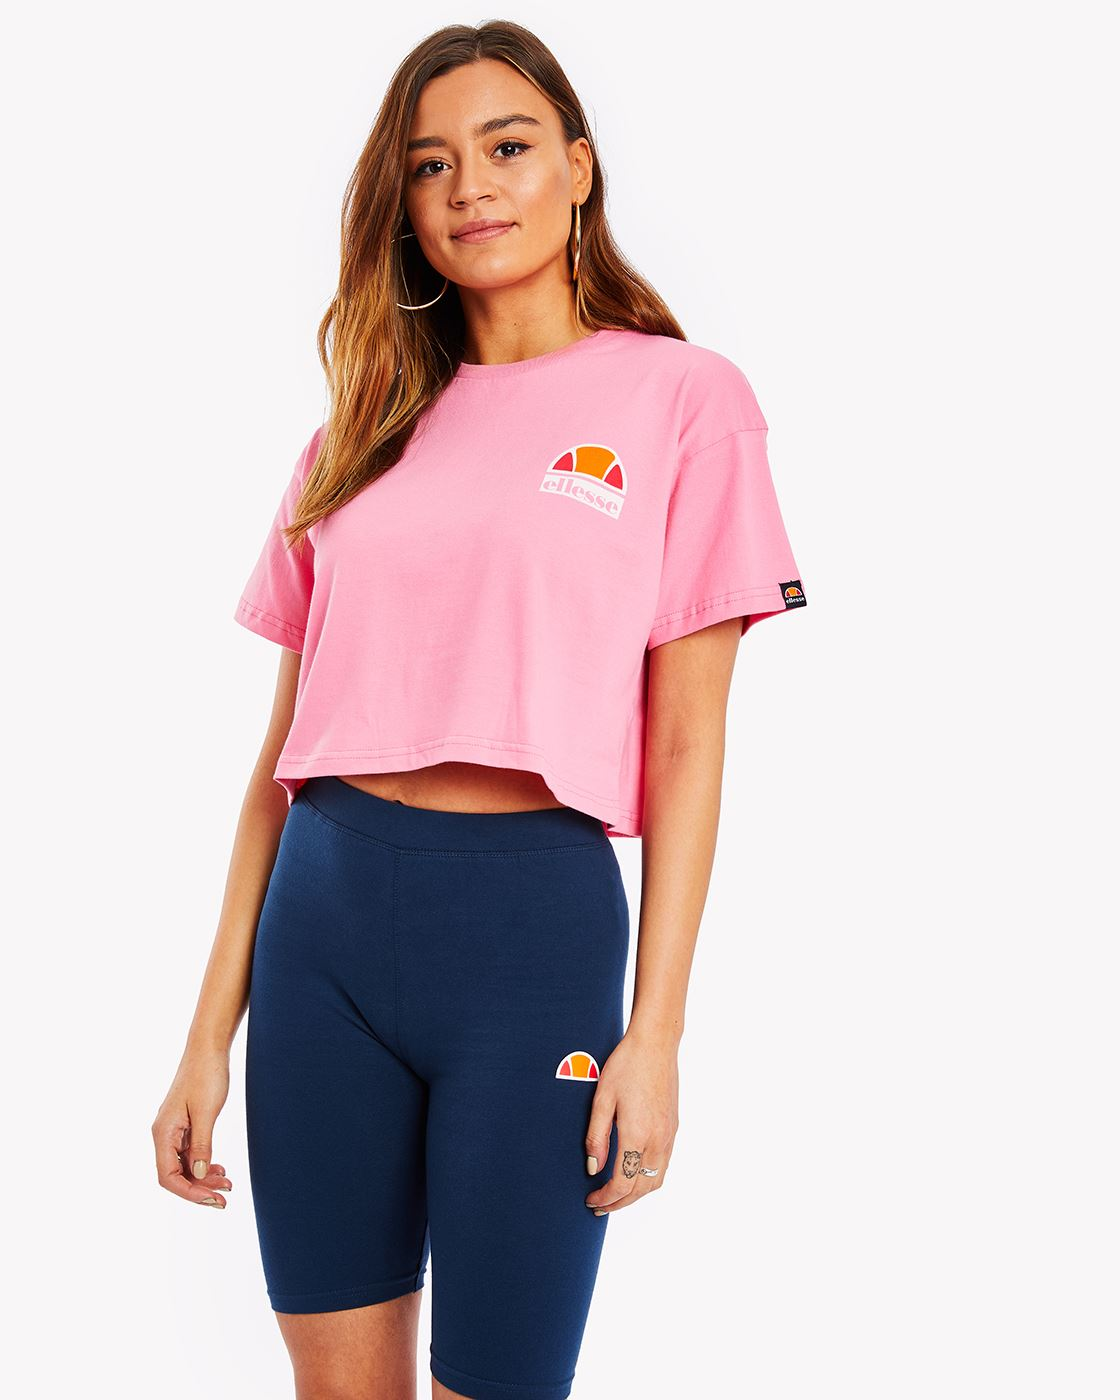 Ellesse-End-of-Line-Clearance-Sale-Bargain-Womens-Tops-T-Shirts-Free-UK-Ship thumbnail 37